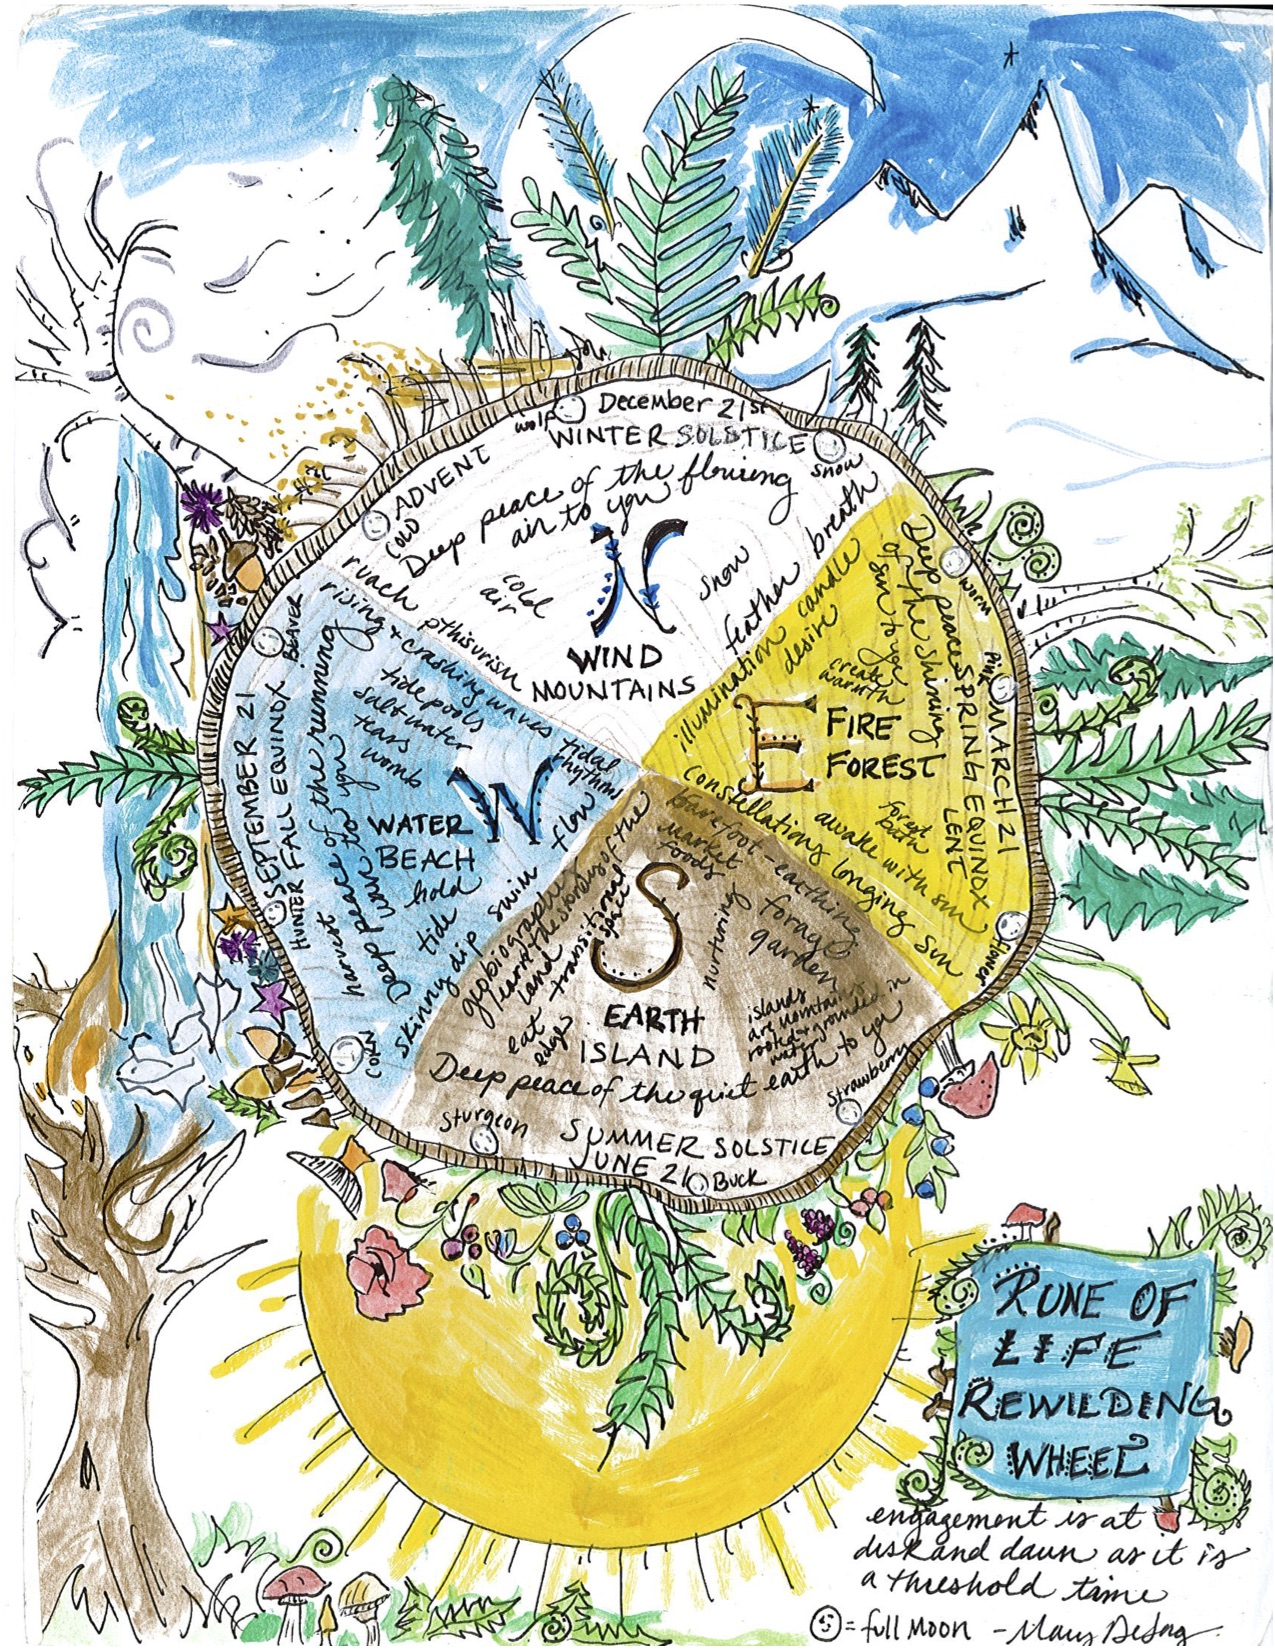 Mary DeJong's hand drawing of the REwilding Wheel